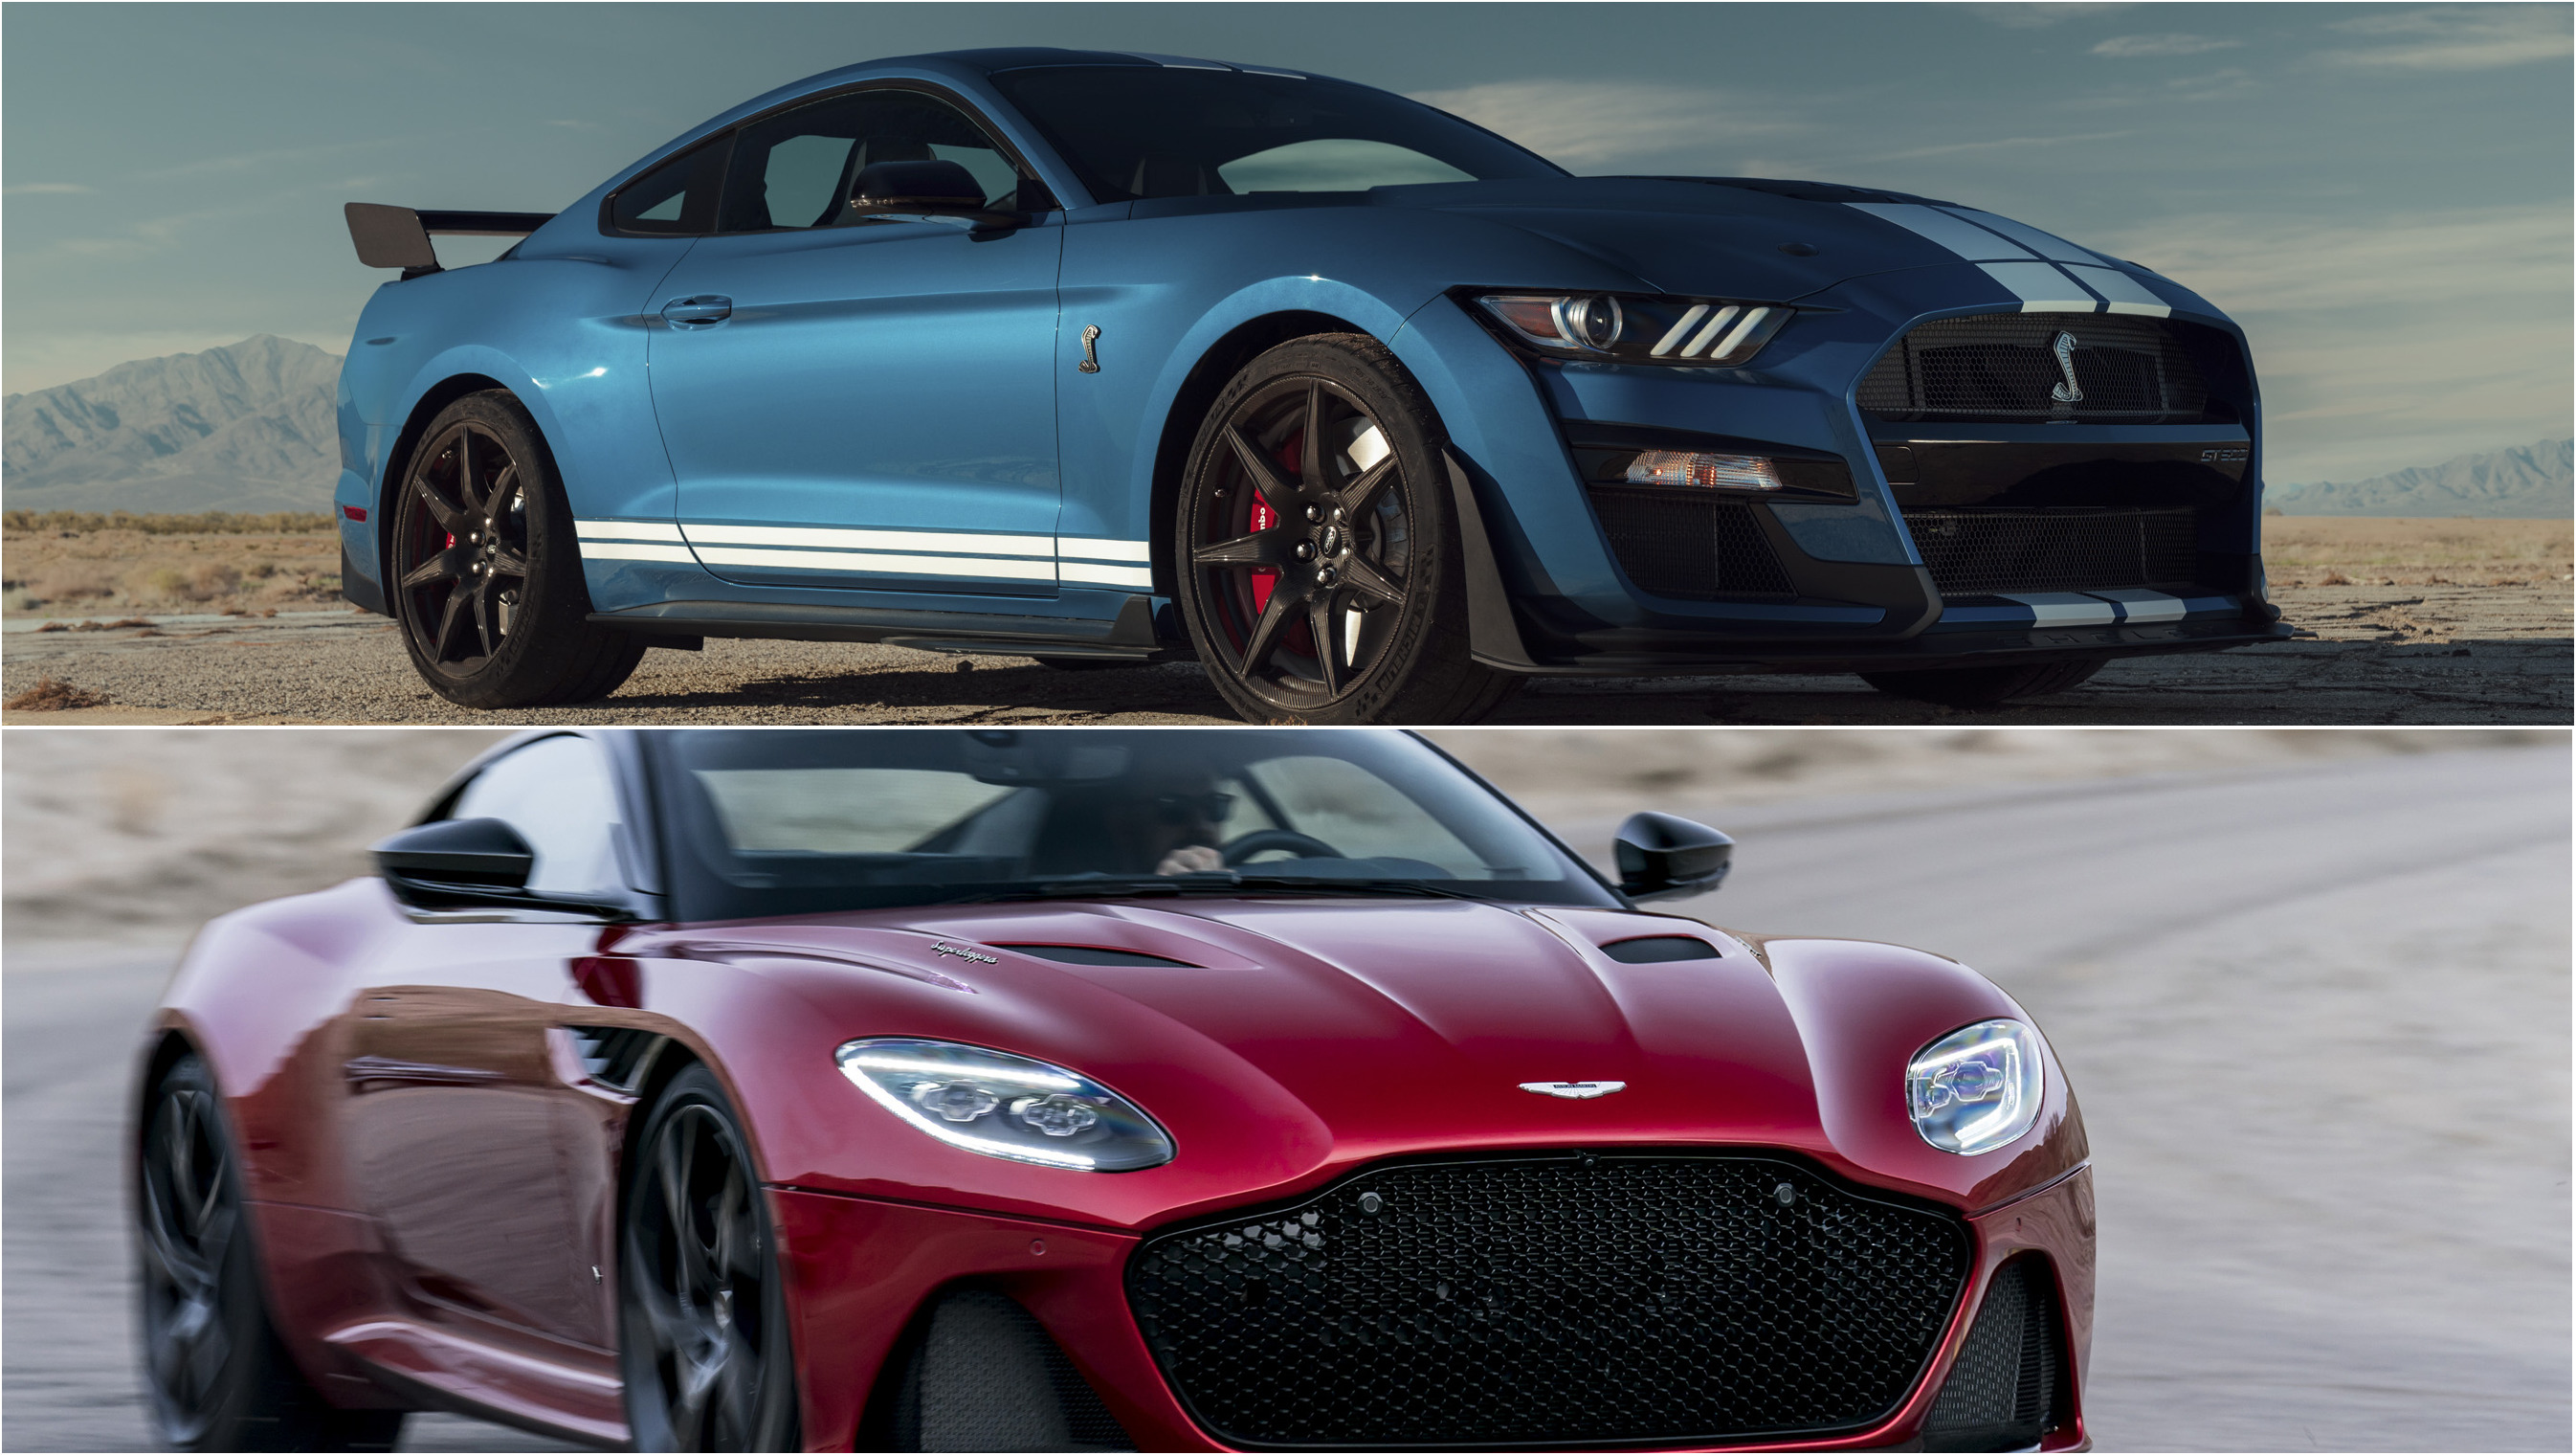 Ford Edge Vs Escape >> 2020 Ford Mustang Shleby GT500 Vs 2019 Aston Martin DBS ...